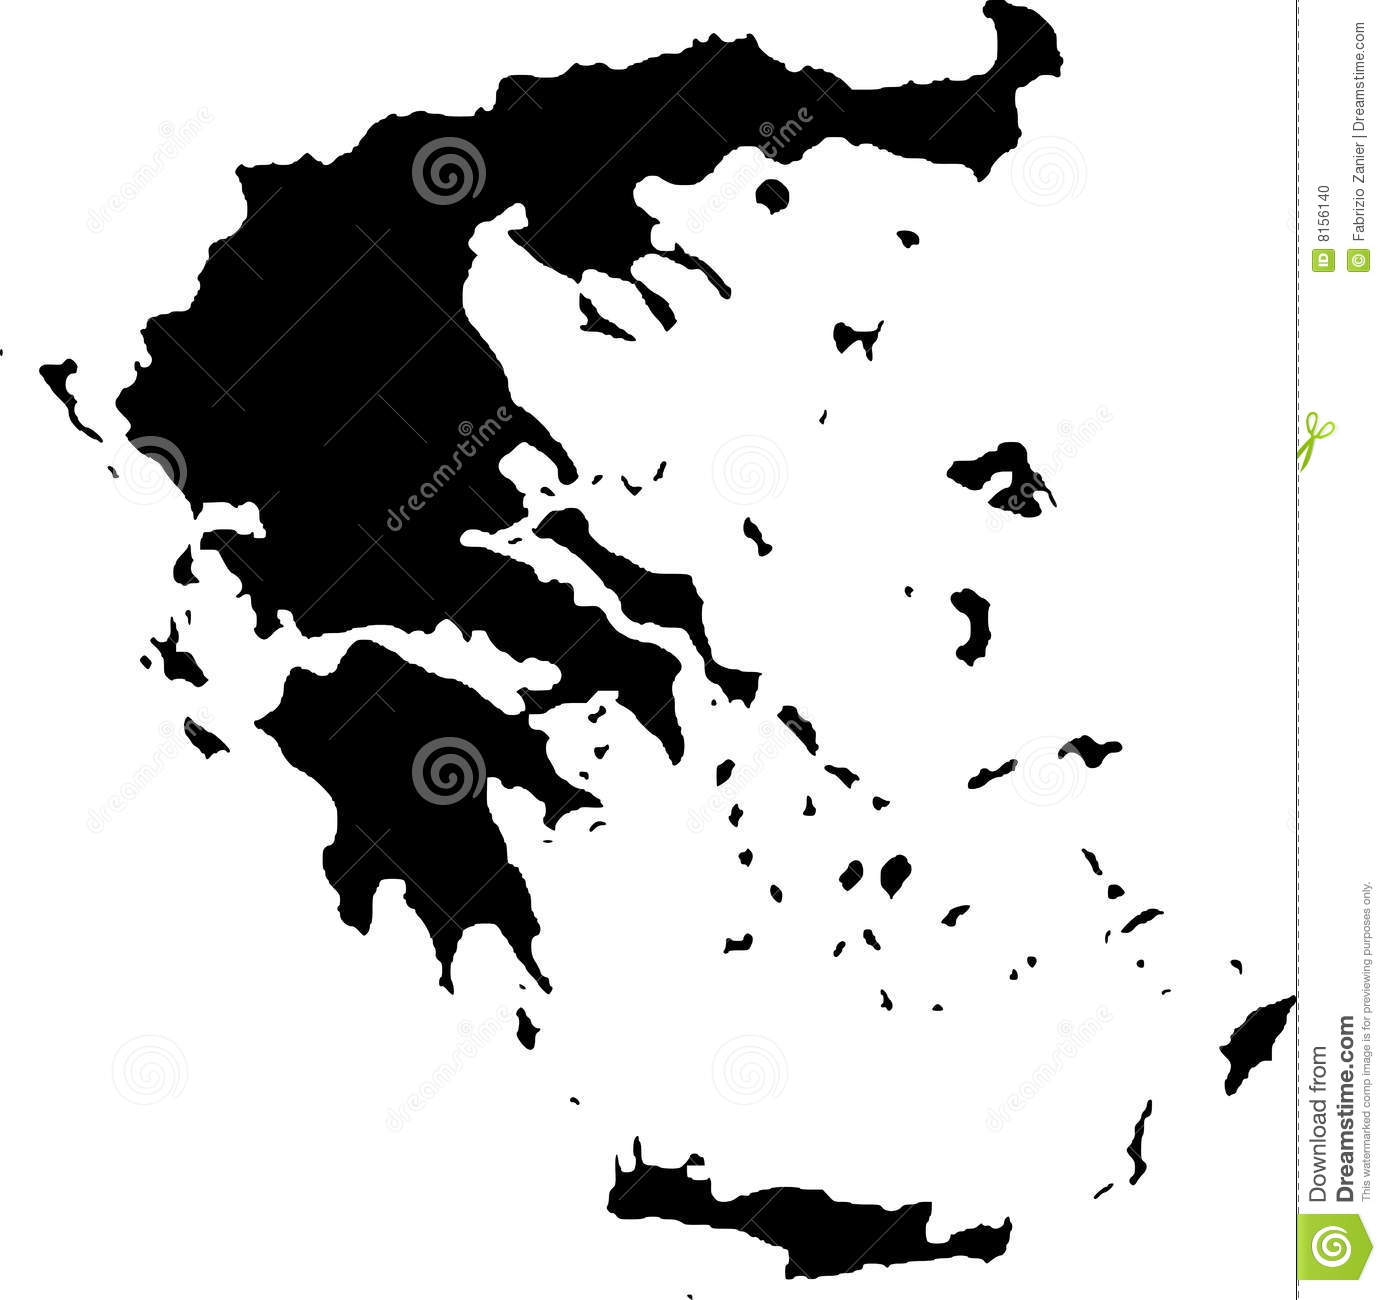 Vector map of greece stock vector. Illustration of land ...